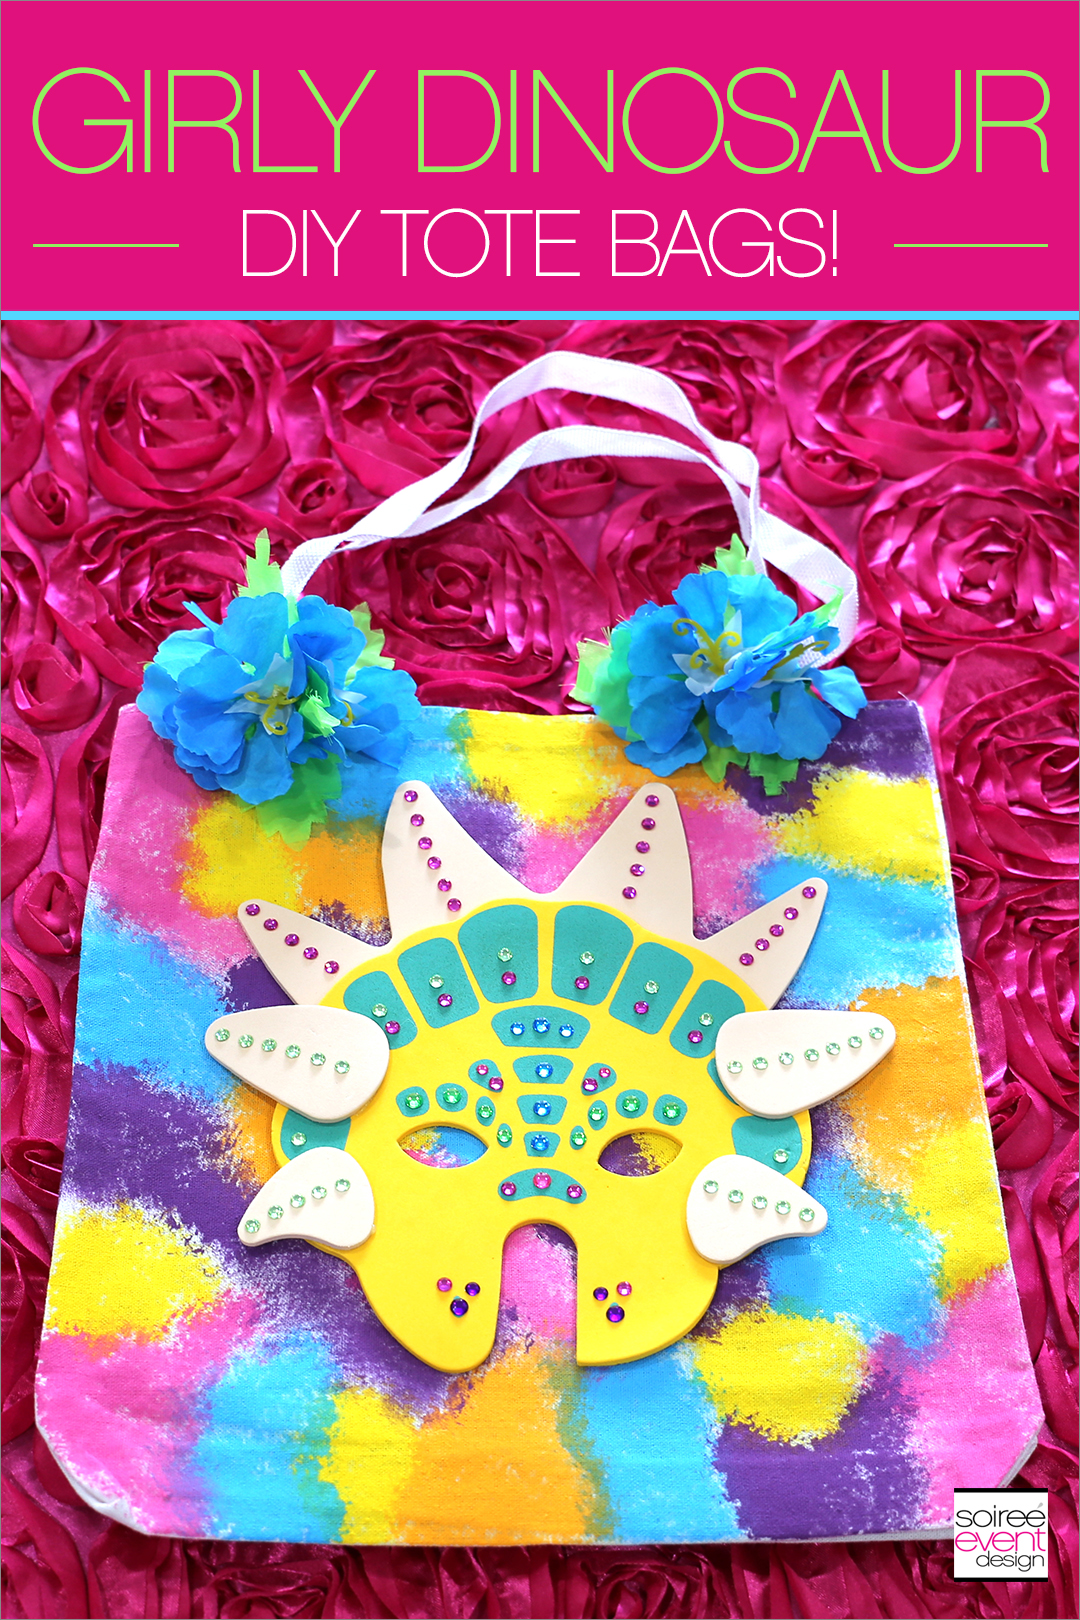 Girly Dinosaur Party Ideas for Girls - Dinosaur Tie Dye Tote Bags